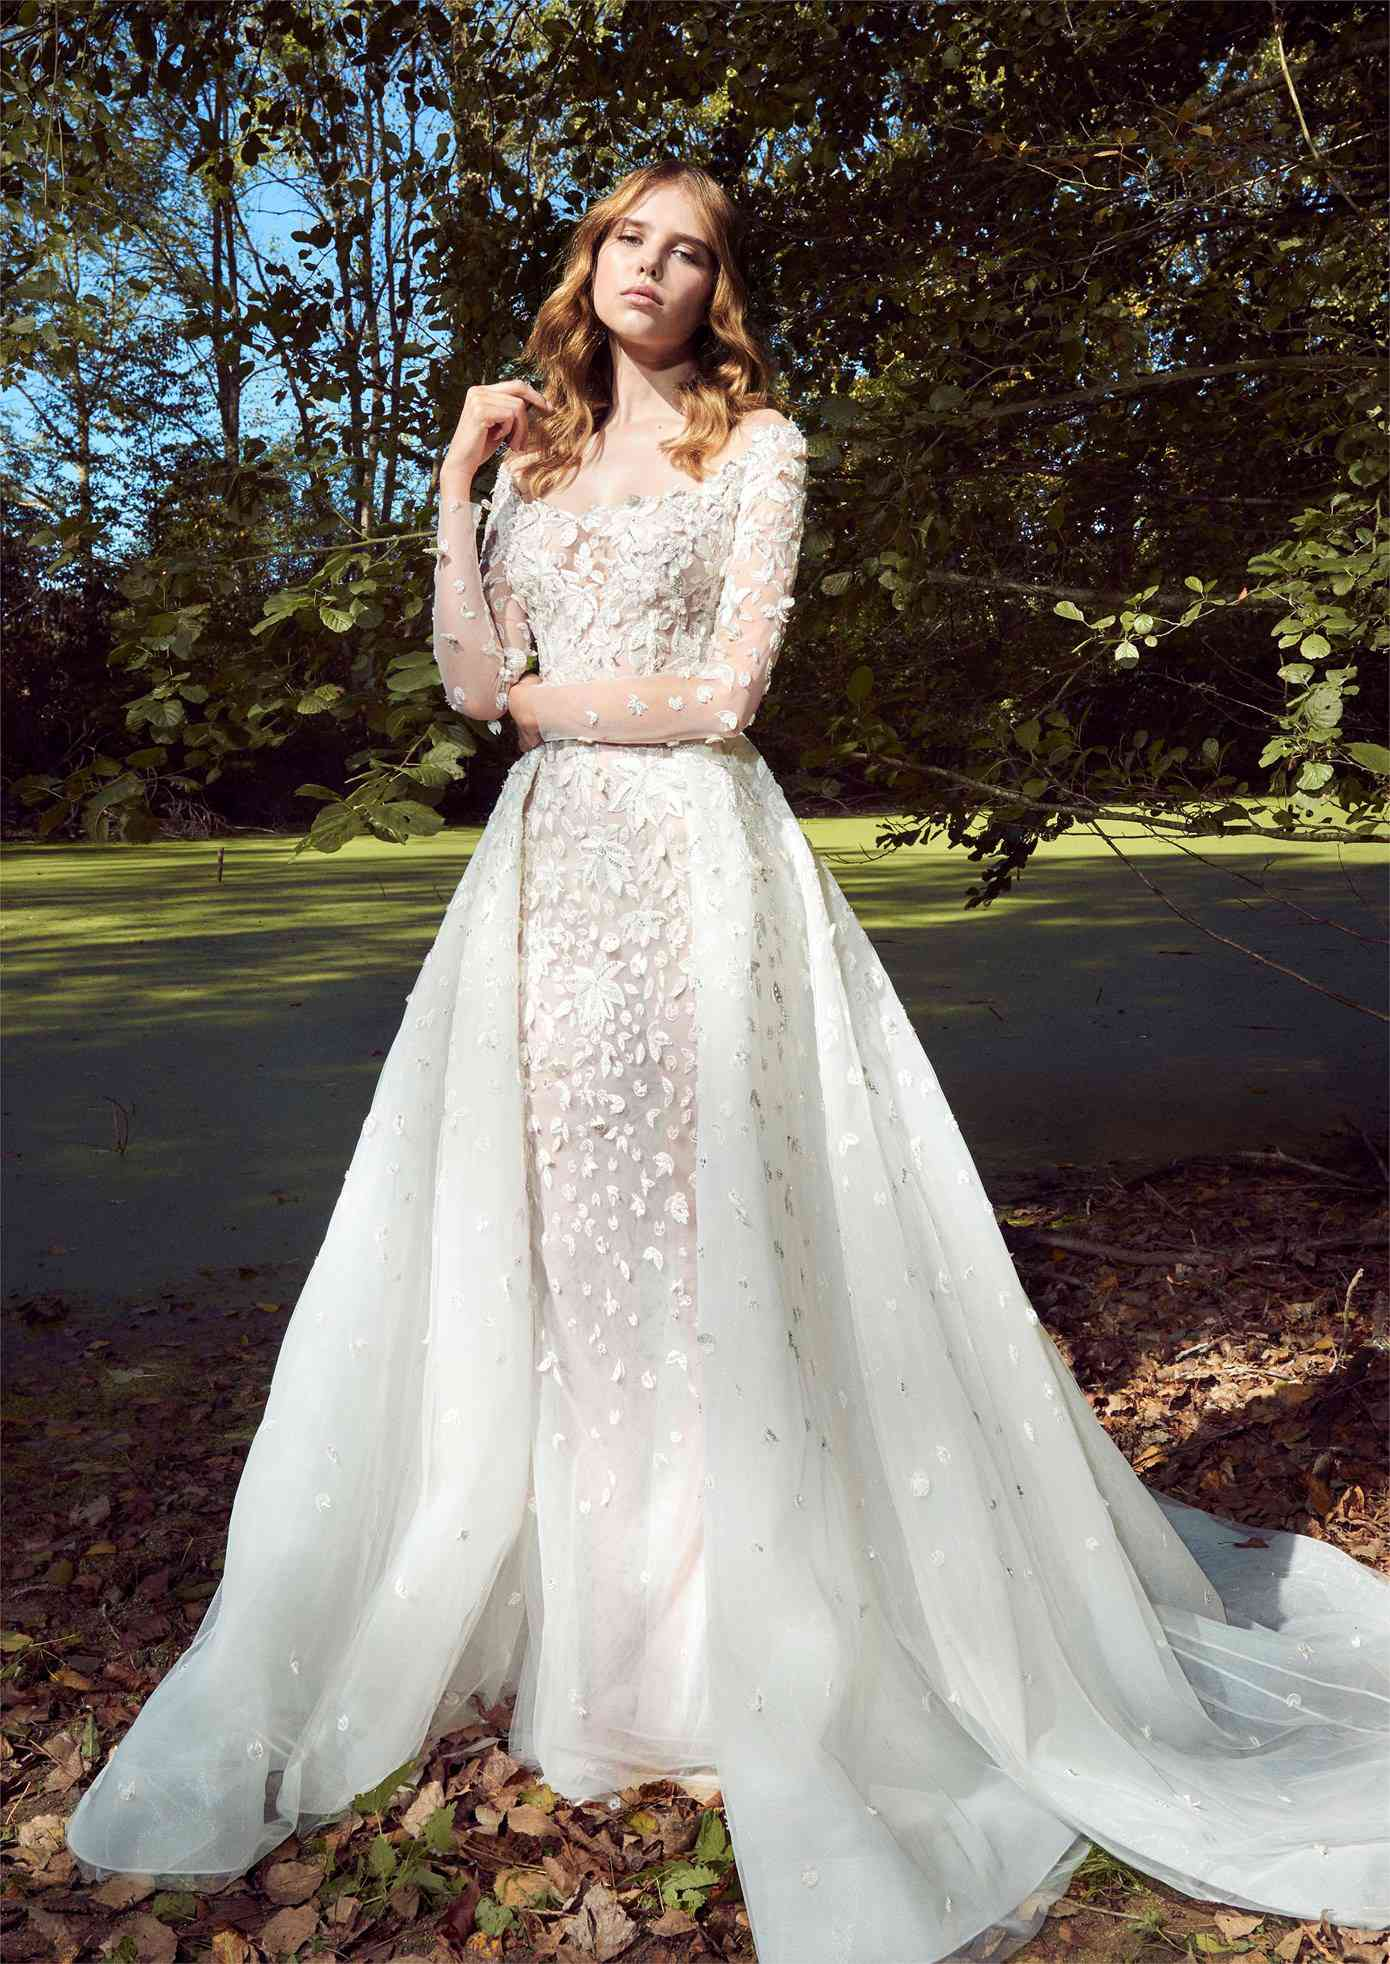 Model in off-the-shoulder long-sleeve gown with allover floral appliques and a matching overskirt